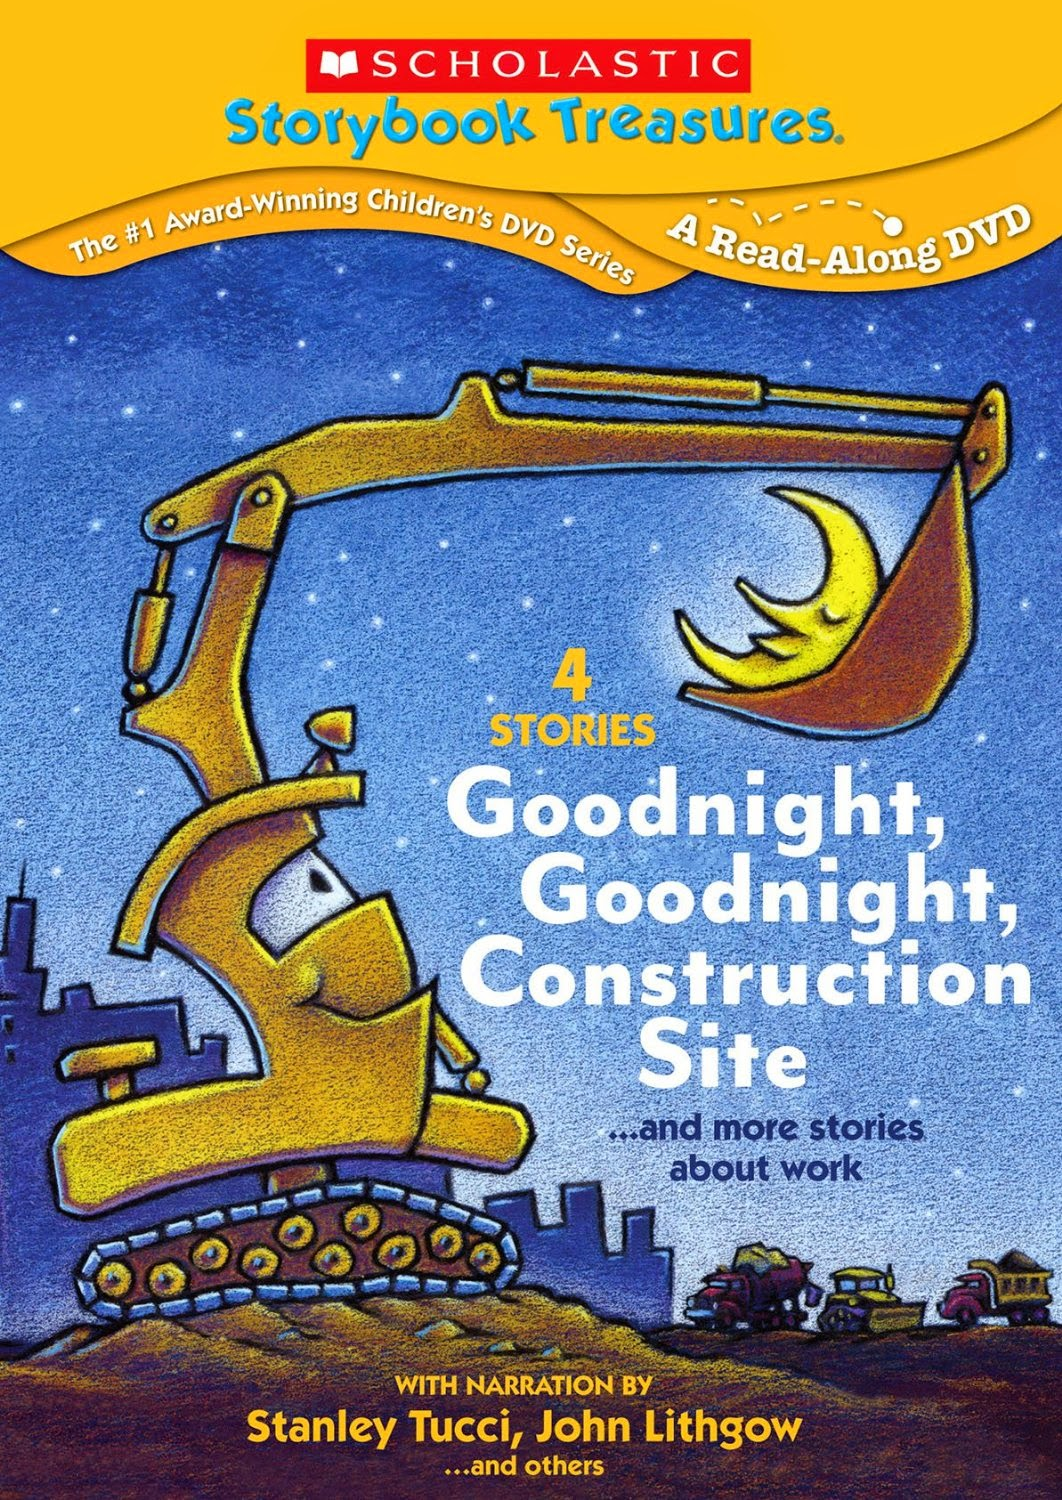 Goodnight Goodnight Construction Site & More Stories About Work